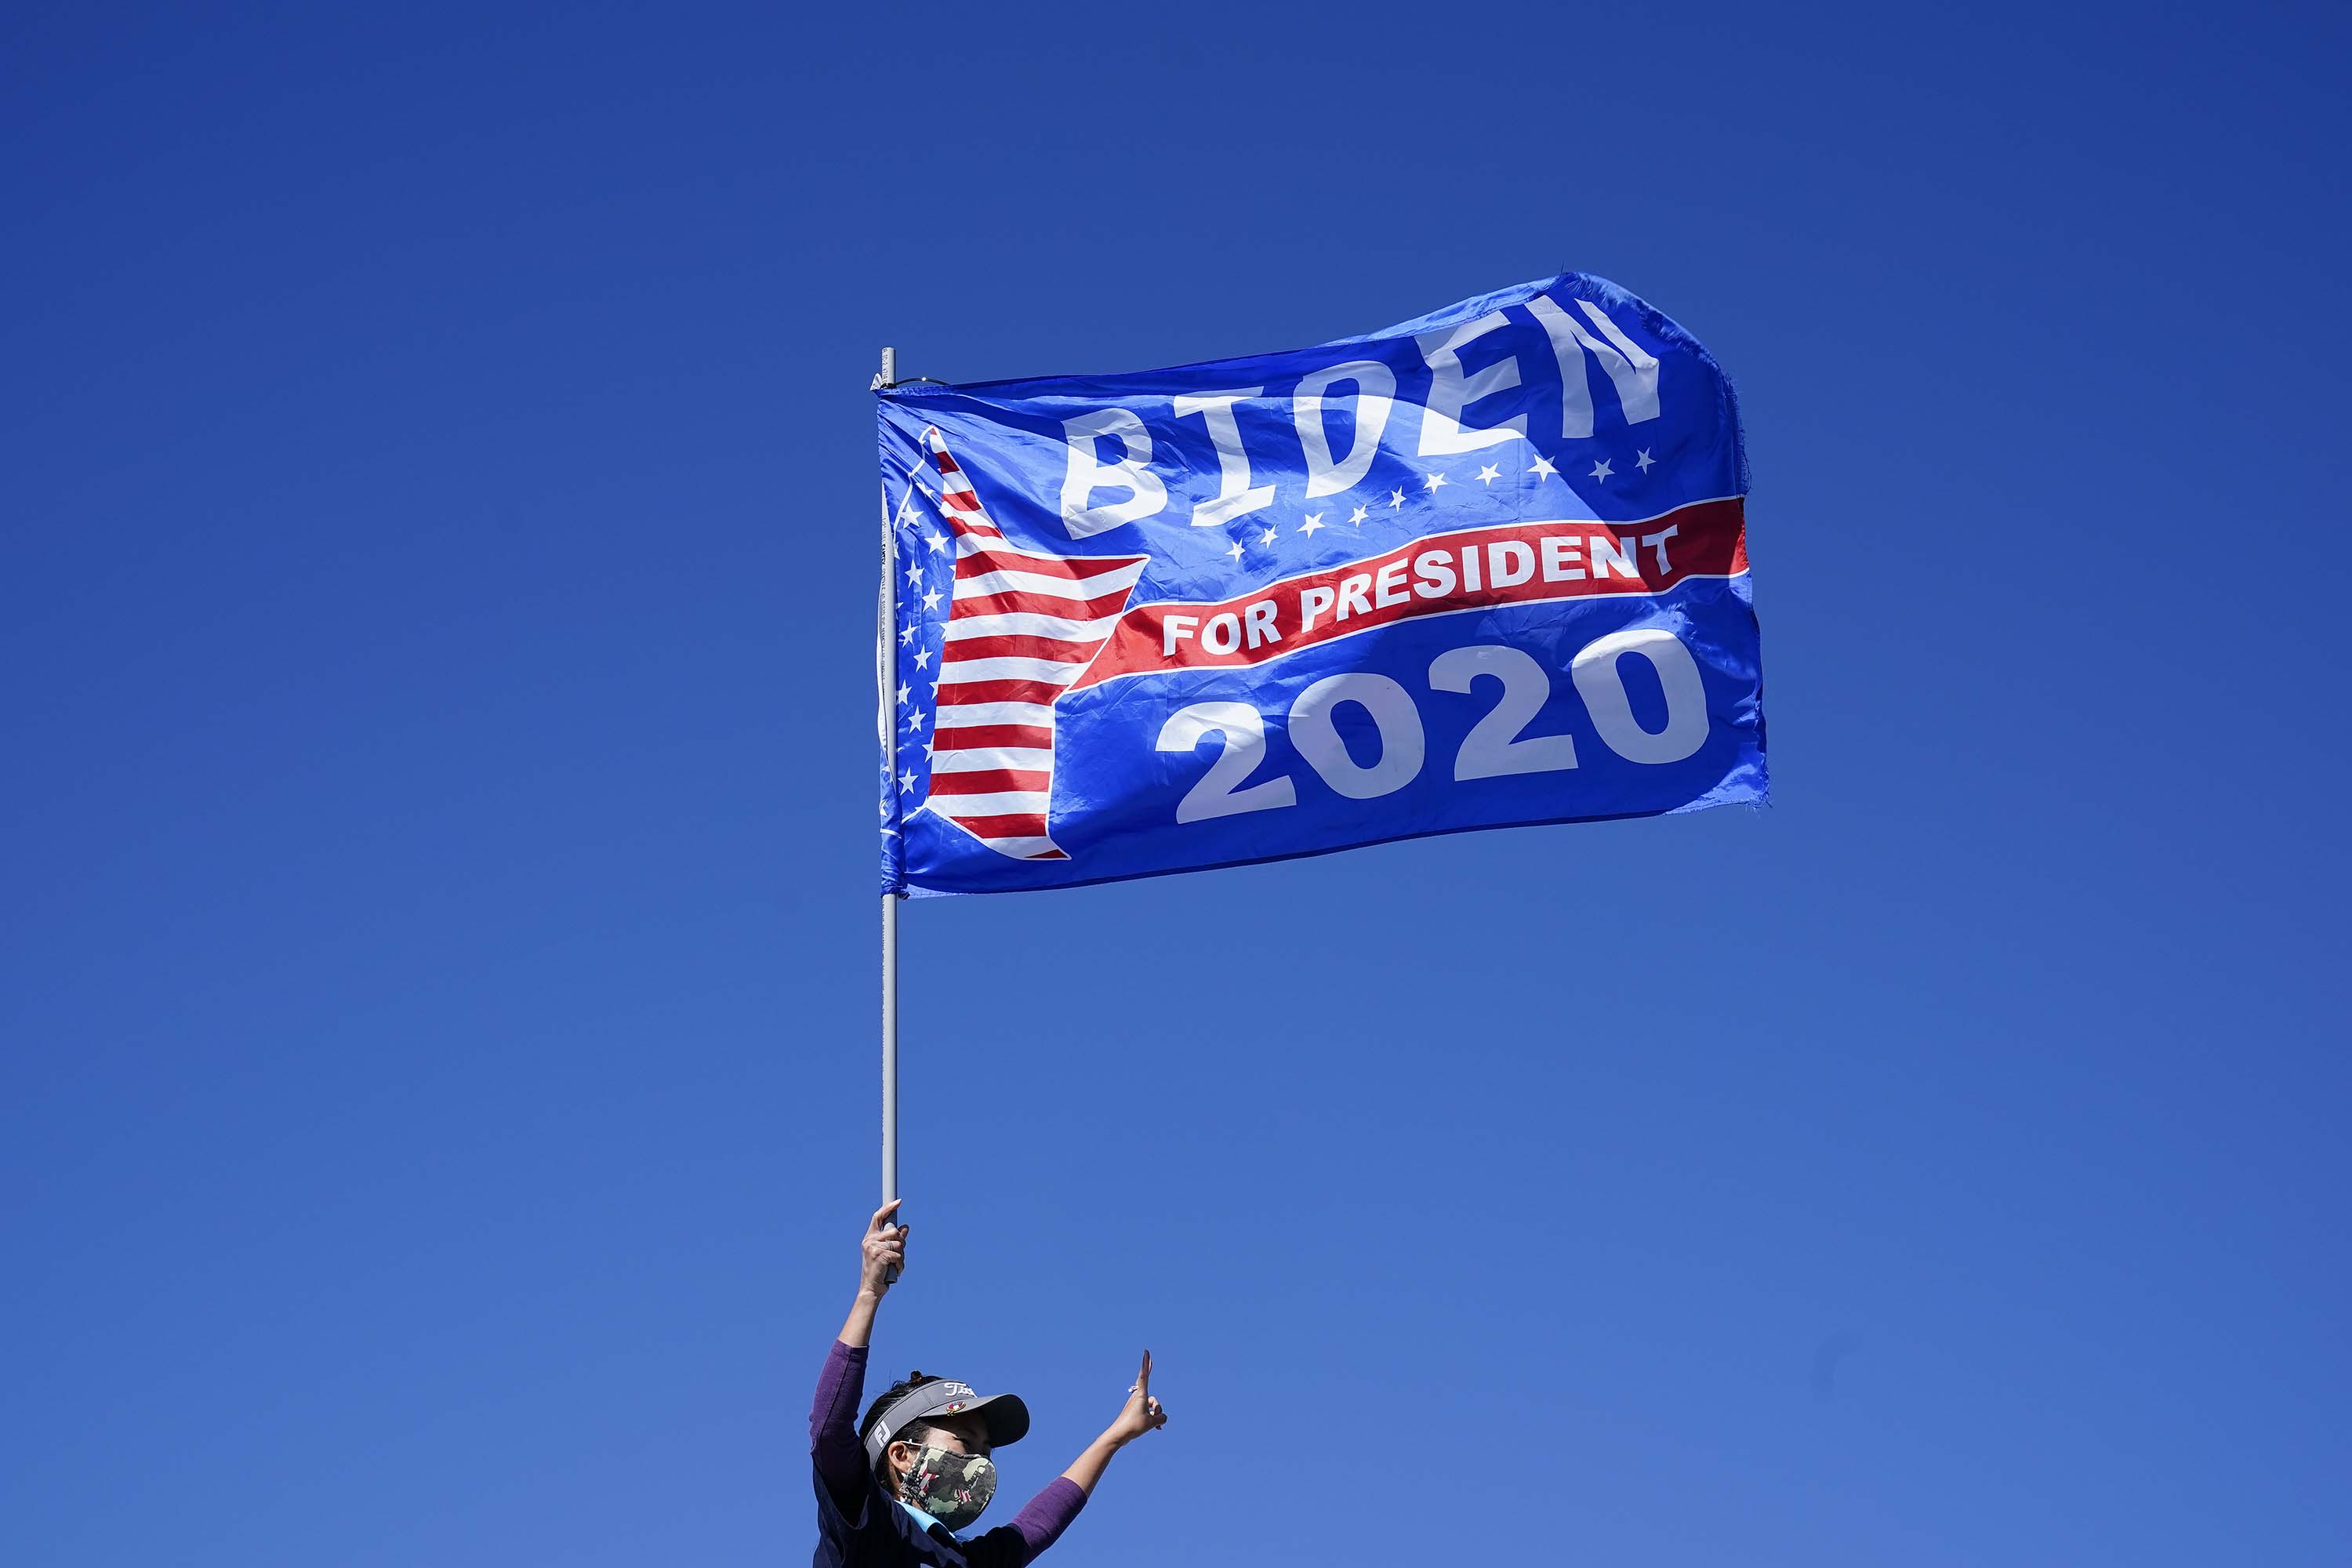 Biden supporters wait for former President Barack Obama to arrive and speak at a rally as he campaigns for Democratic presidential candidate former Vice President Joe Biden, Monday, Nov. 2, 2020, at Turner Field in Atlanta. (AP Photo/Brynn Anderson)